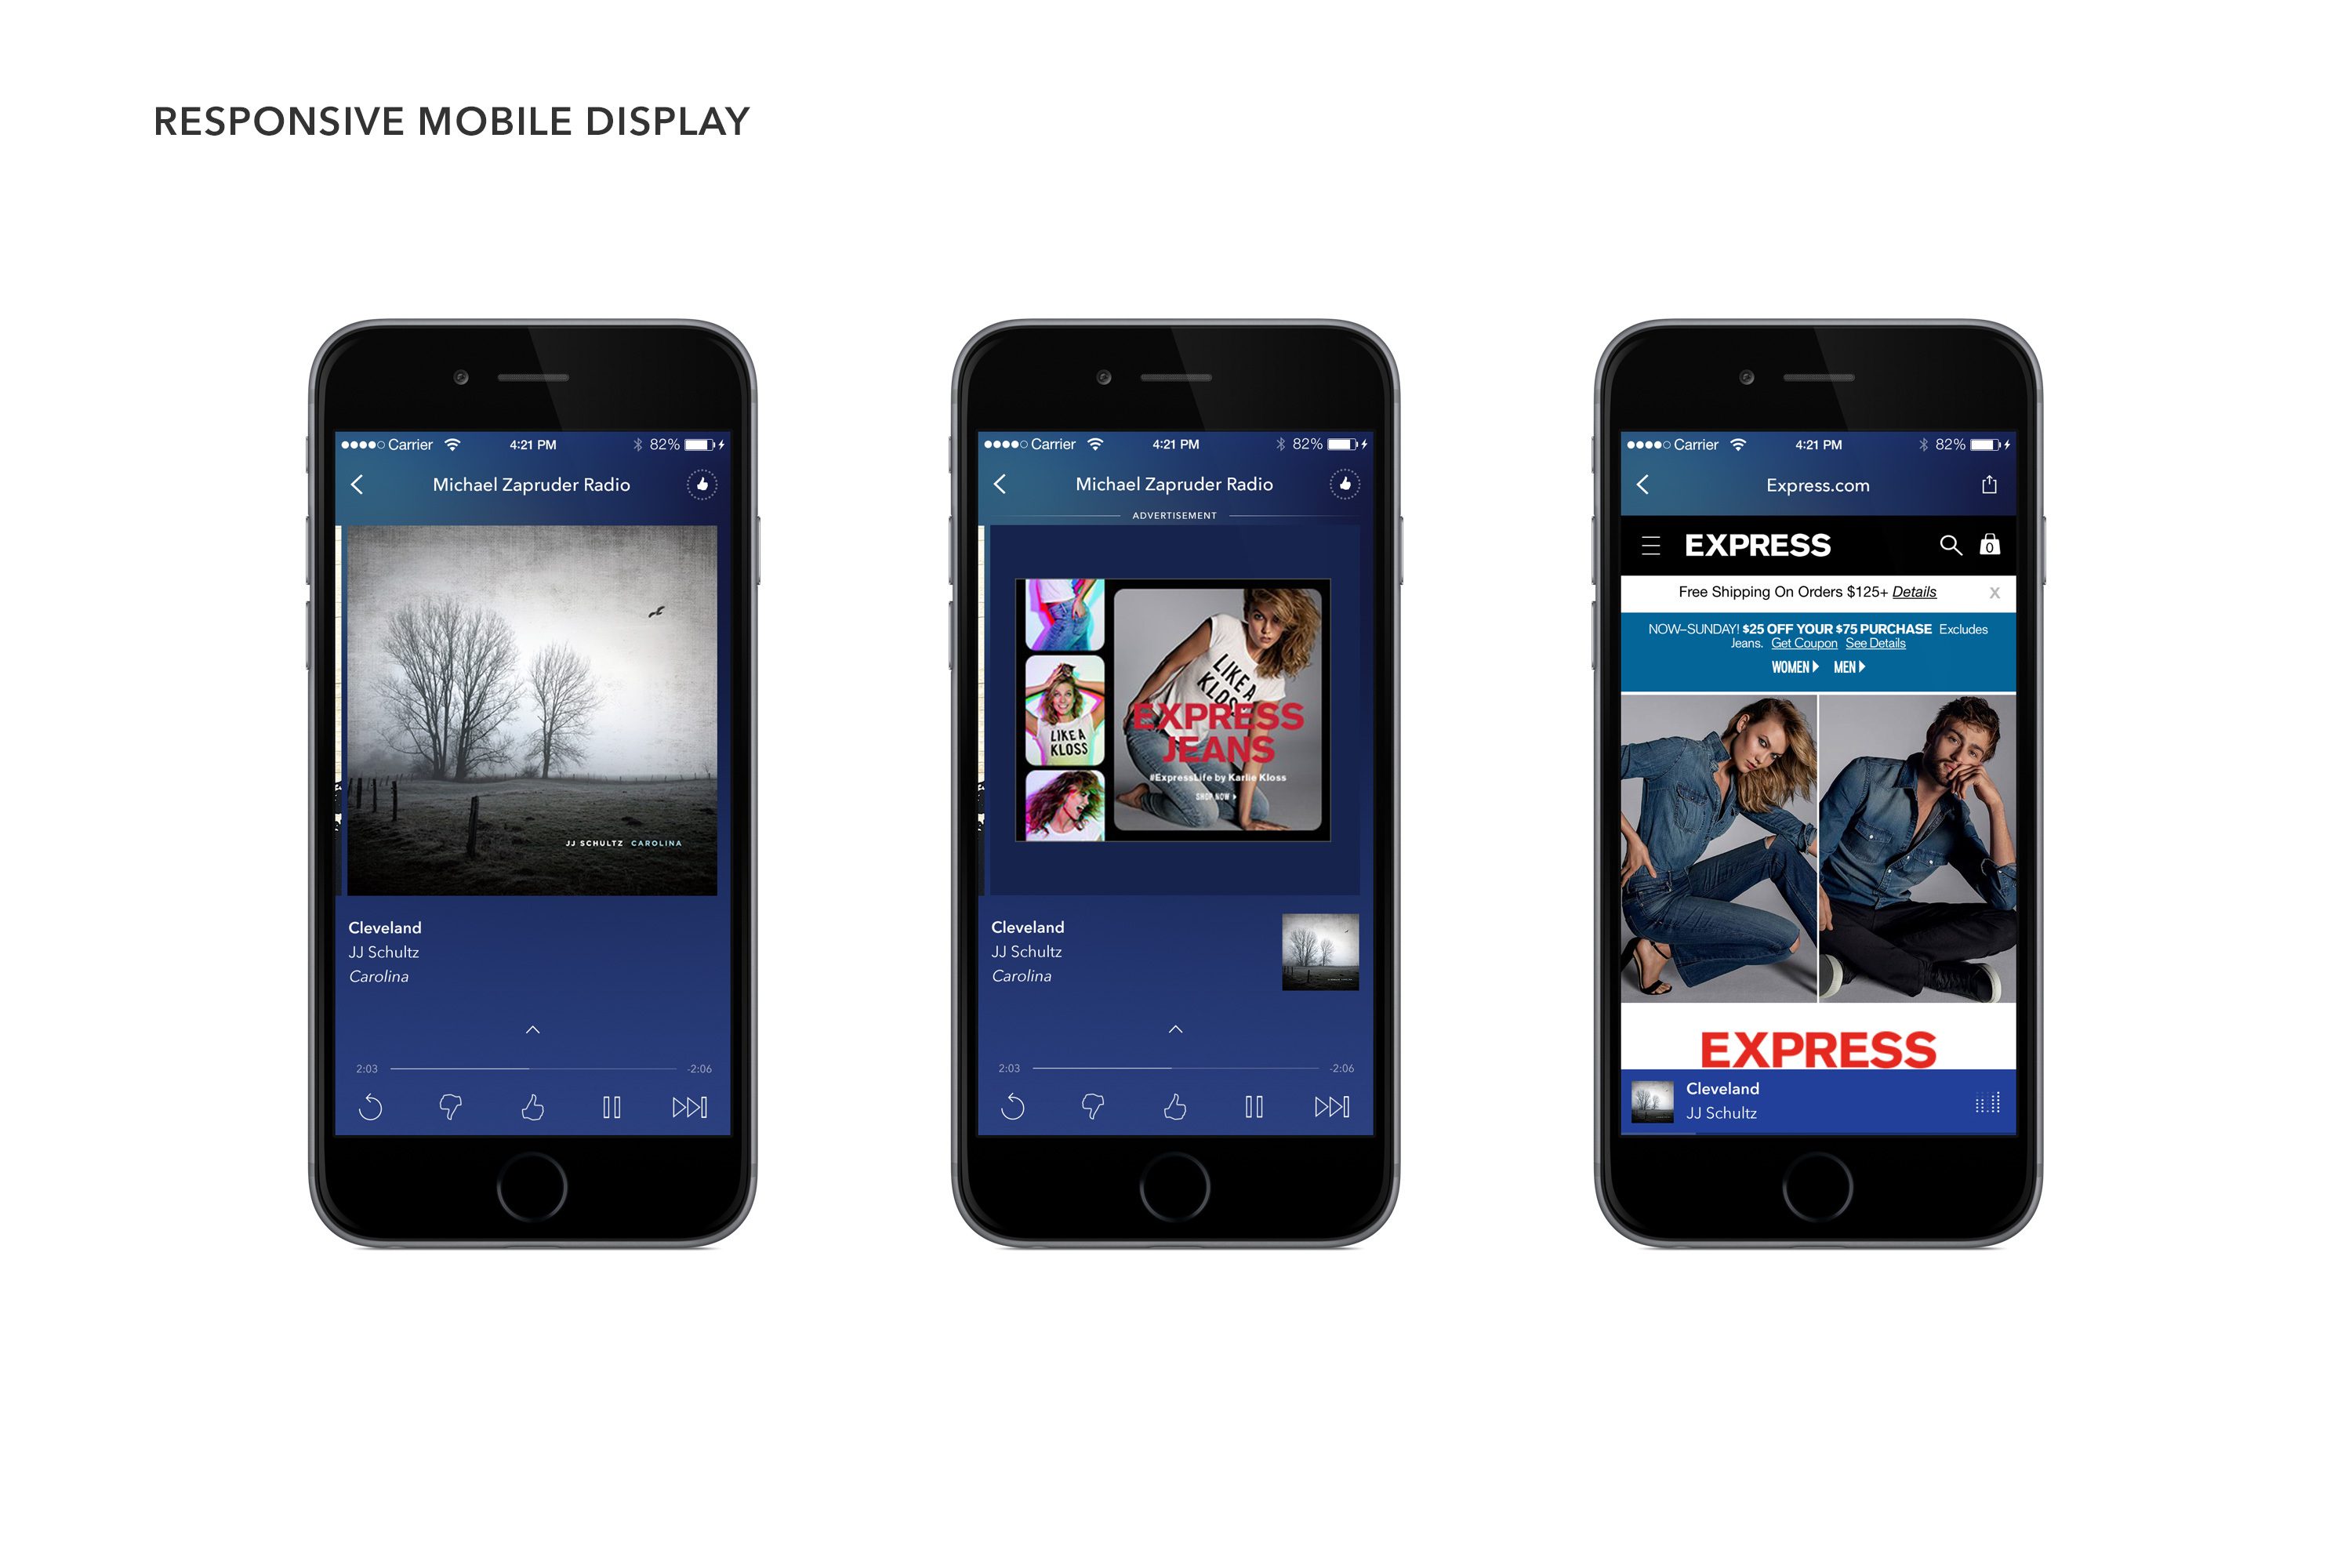 Pandora's Responsive Mobile Display (Photo: Business Wire)